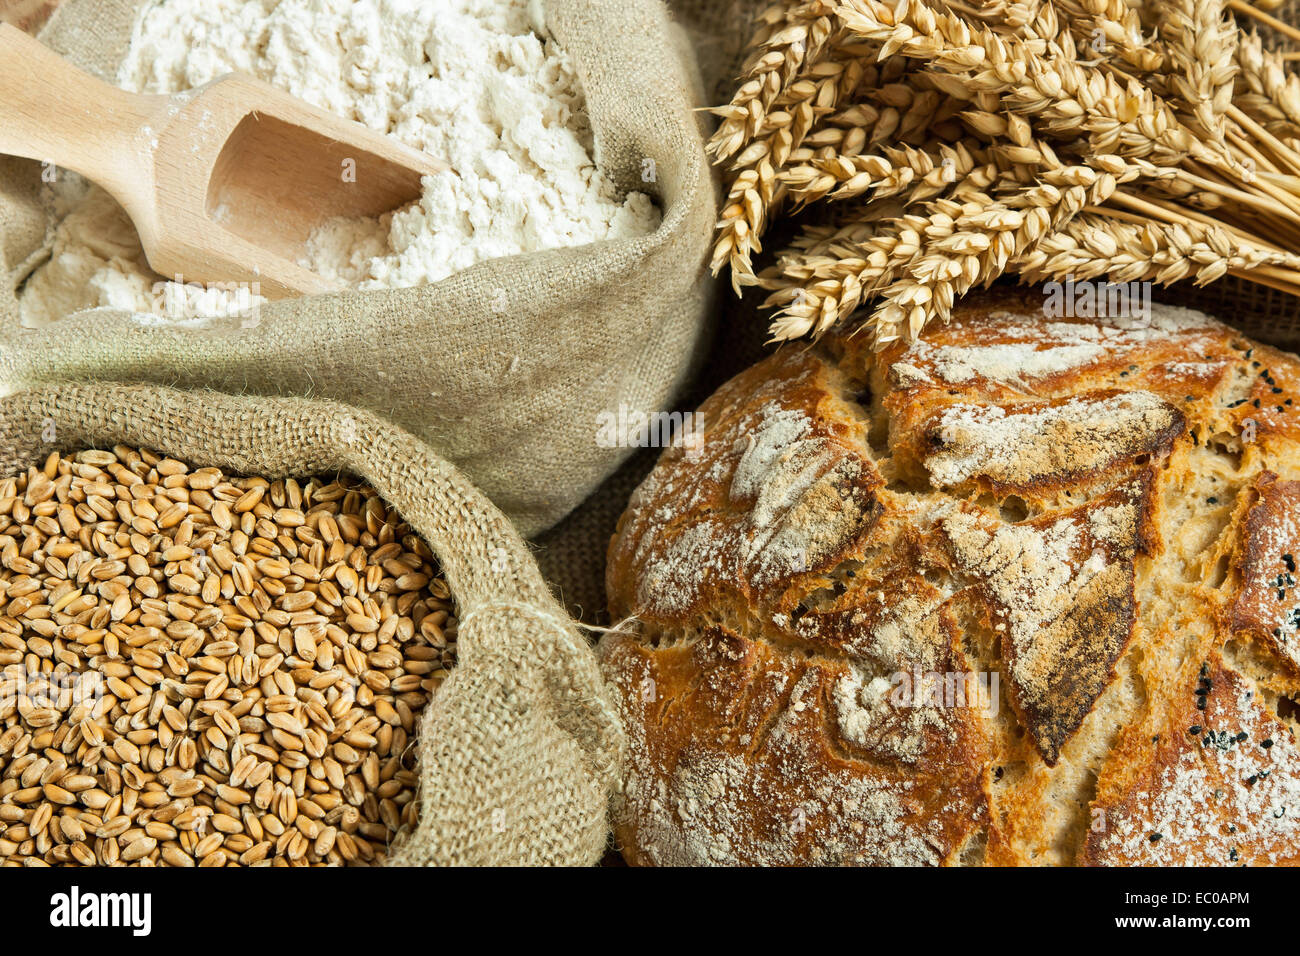 Loaf of bread, flour, wheat grain and wheat spike on table - Stock Image